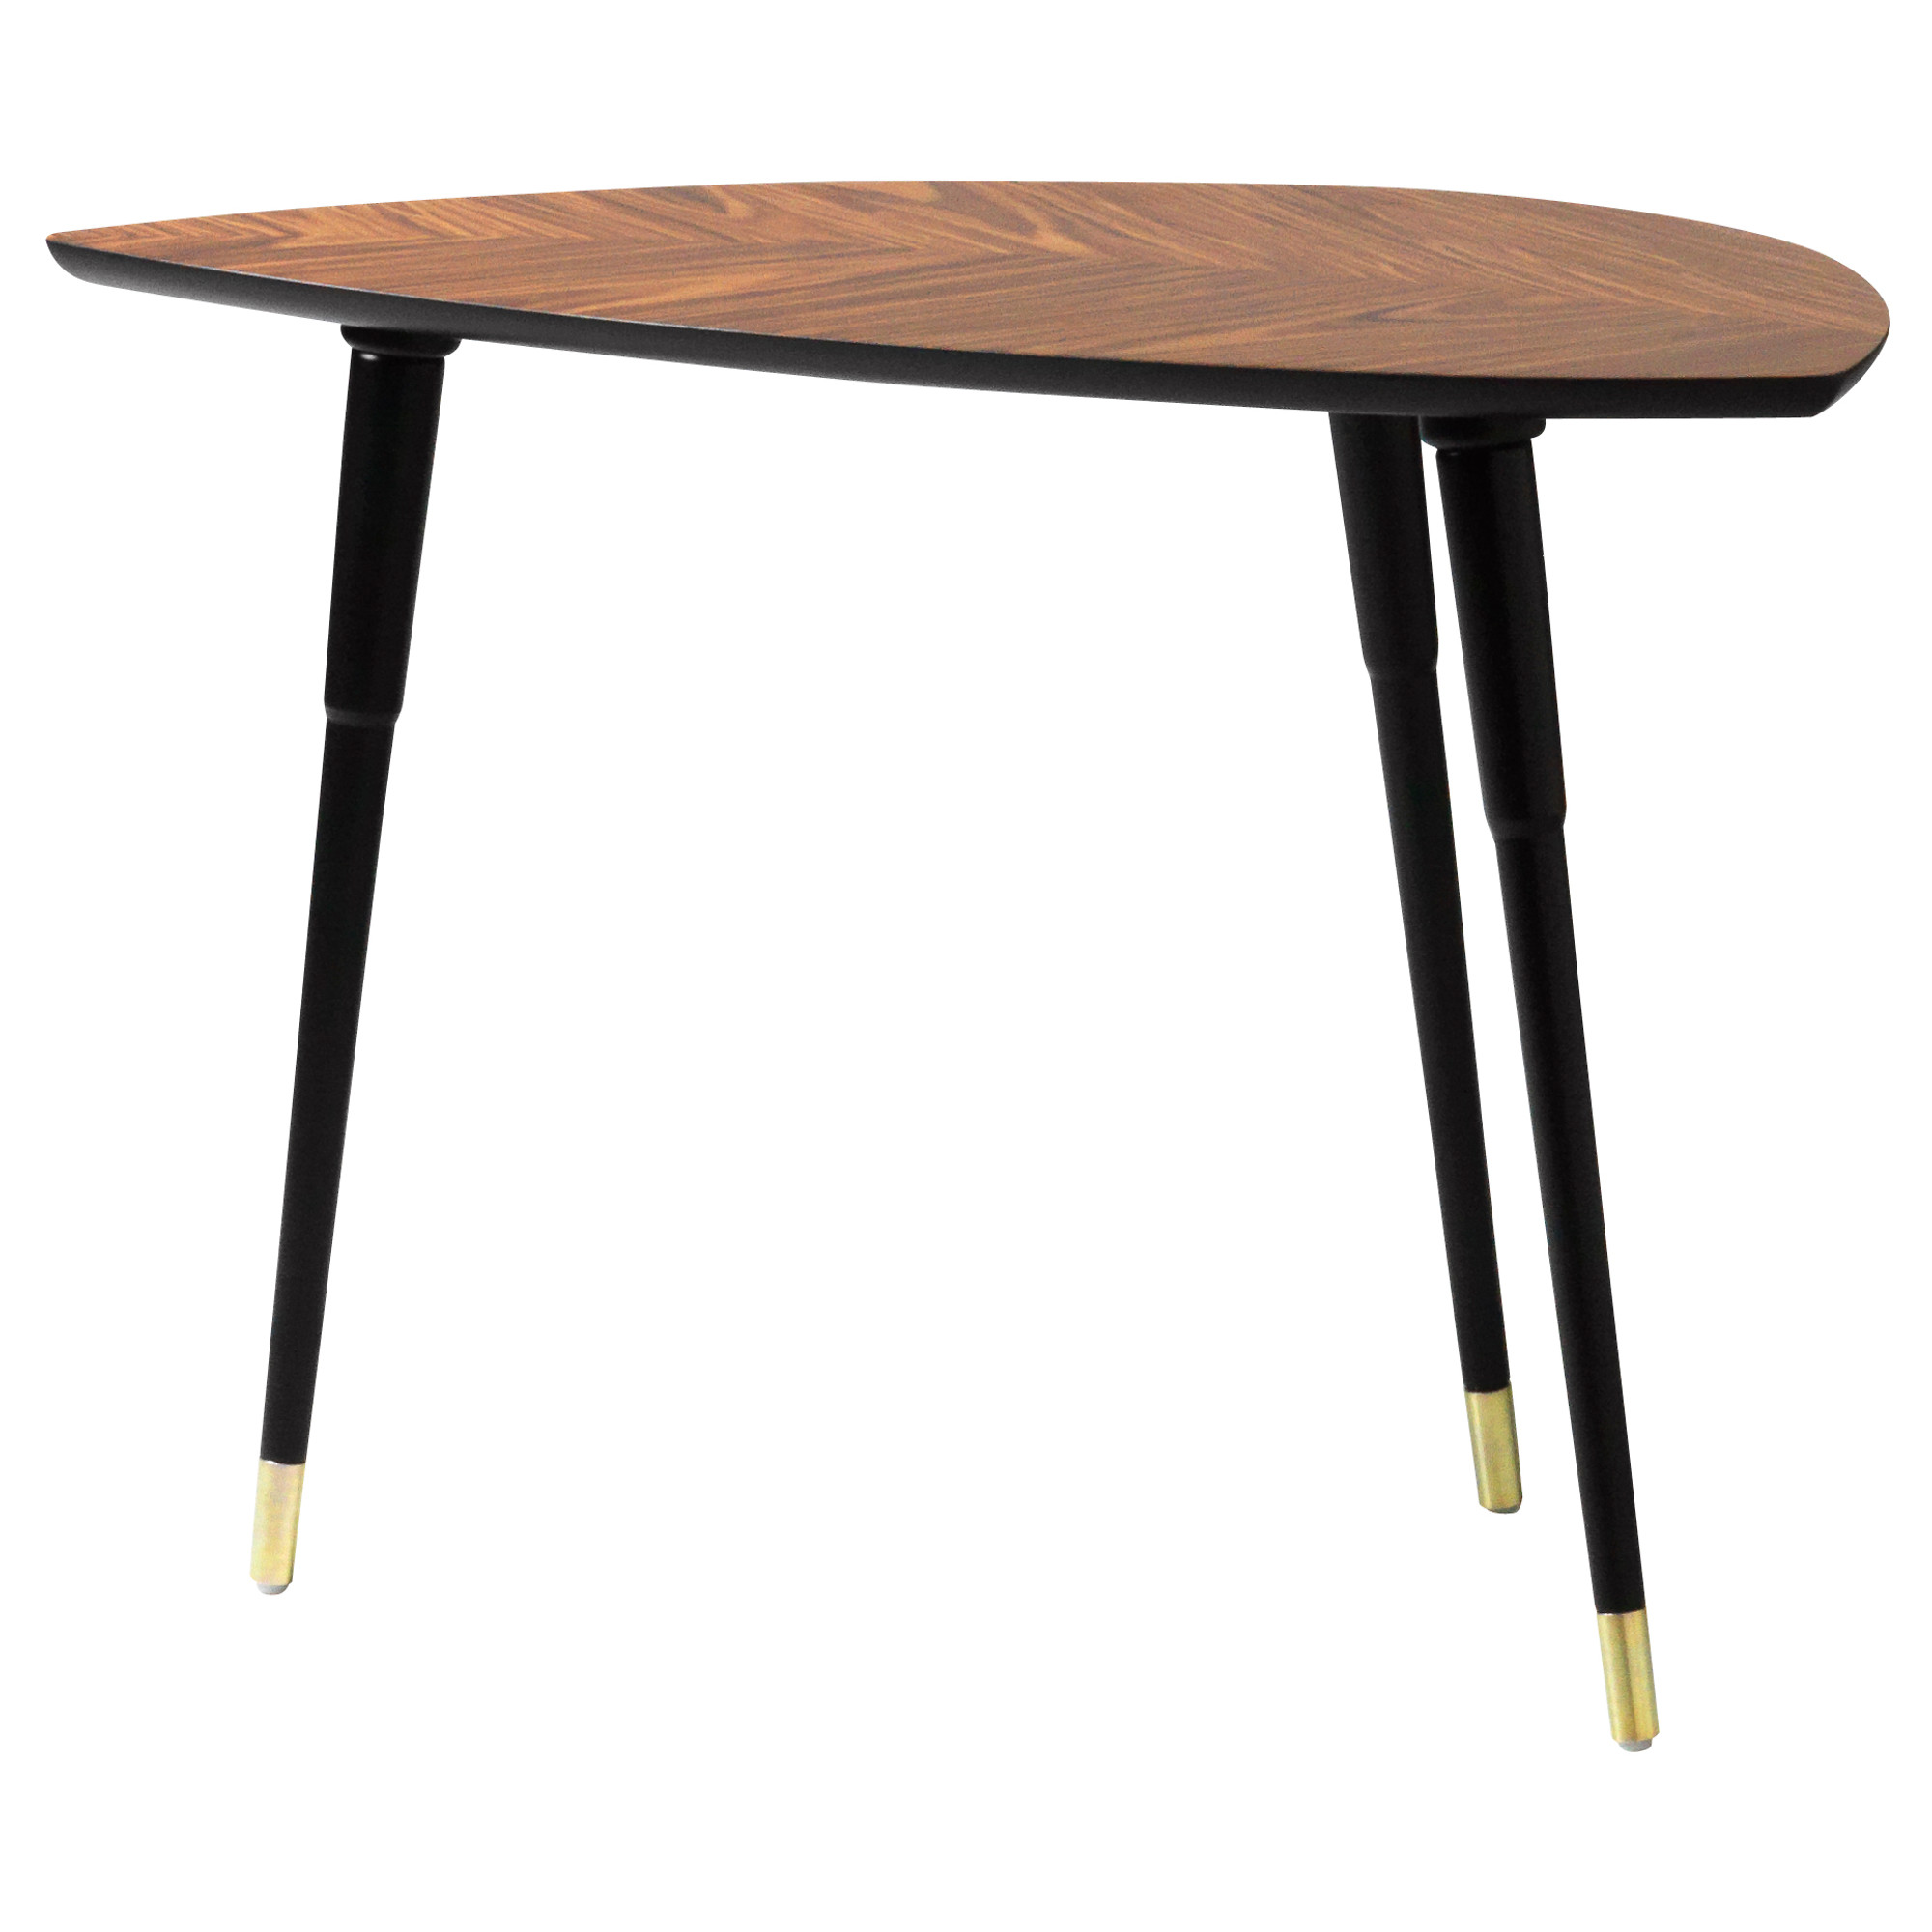 coffee accent tables edgy triangle shaped table plans extra long piece chair set dale lighting narrow farm ikea childrens toy storage units patio umbrellas end with side marble